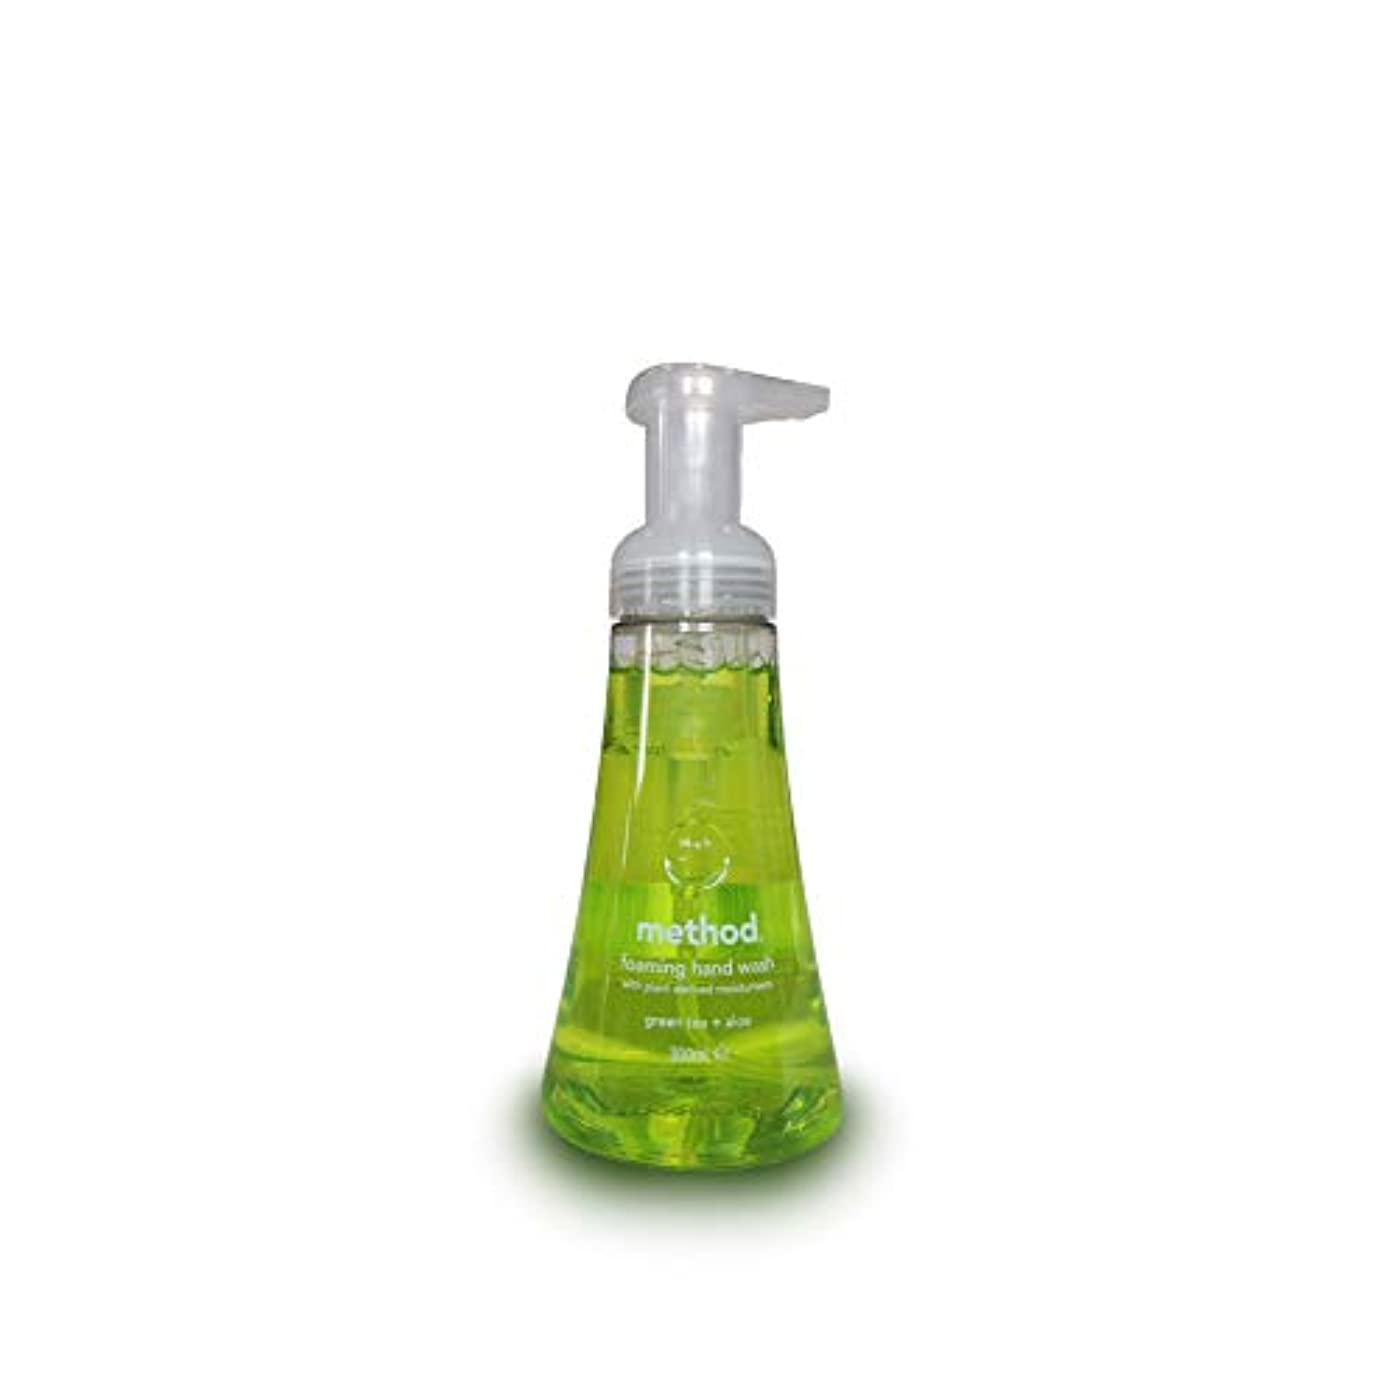 同意するフレームワーク読むMethod Foam Hand Wash Green Tea Aloe 300 ml (Pack of 3)